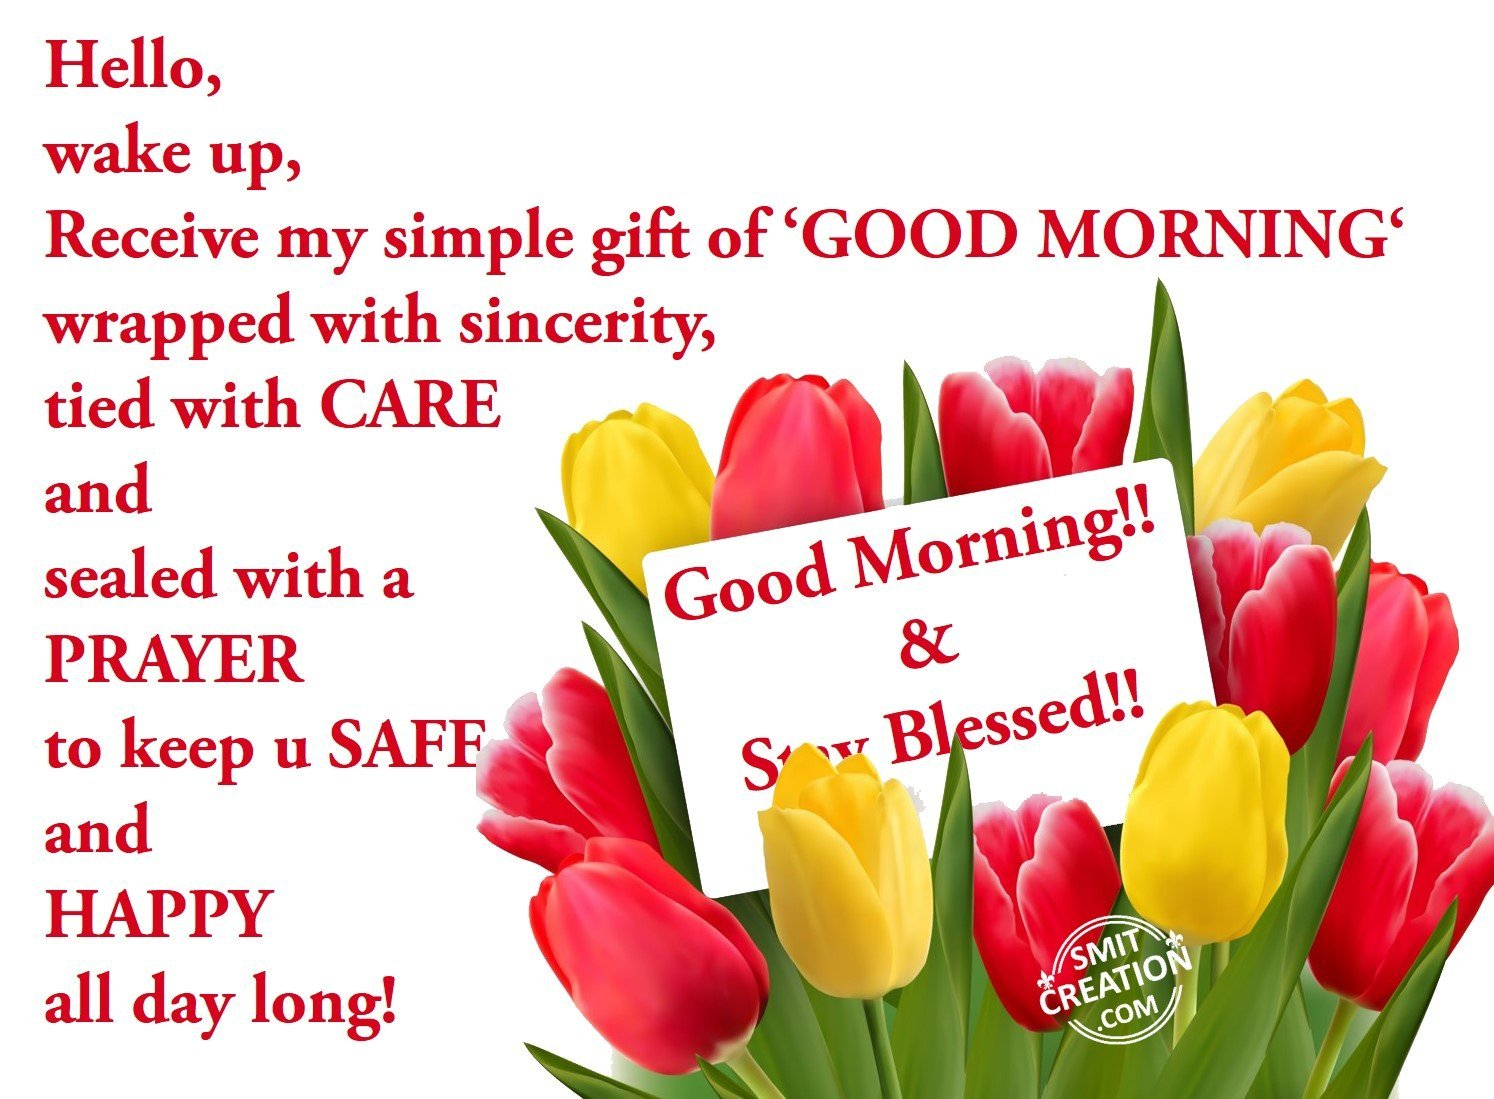 Good Morning Message Pictures And Graphics Smitcreation